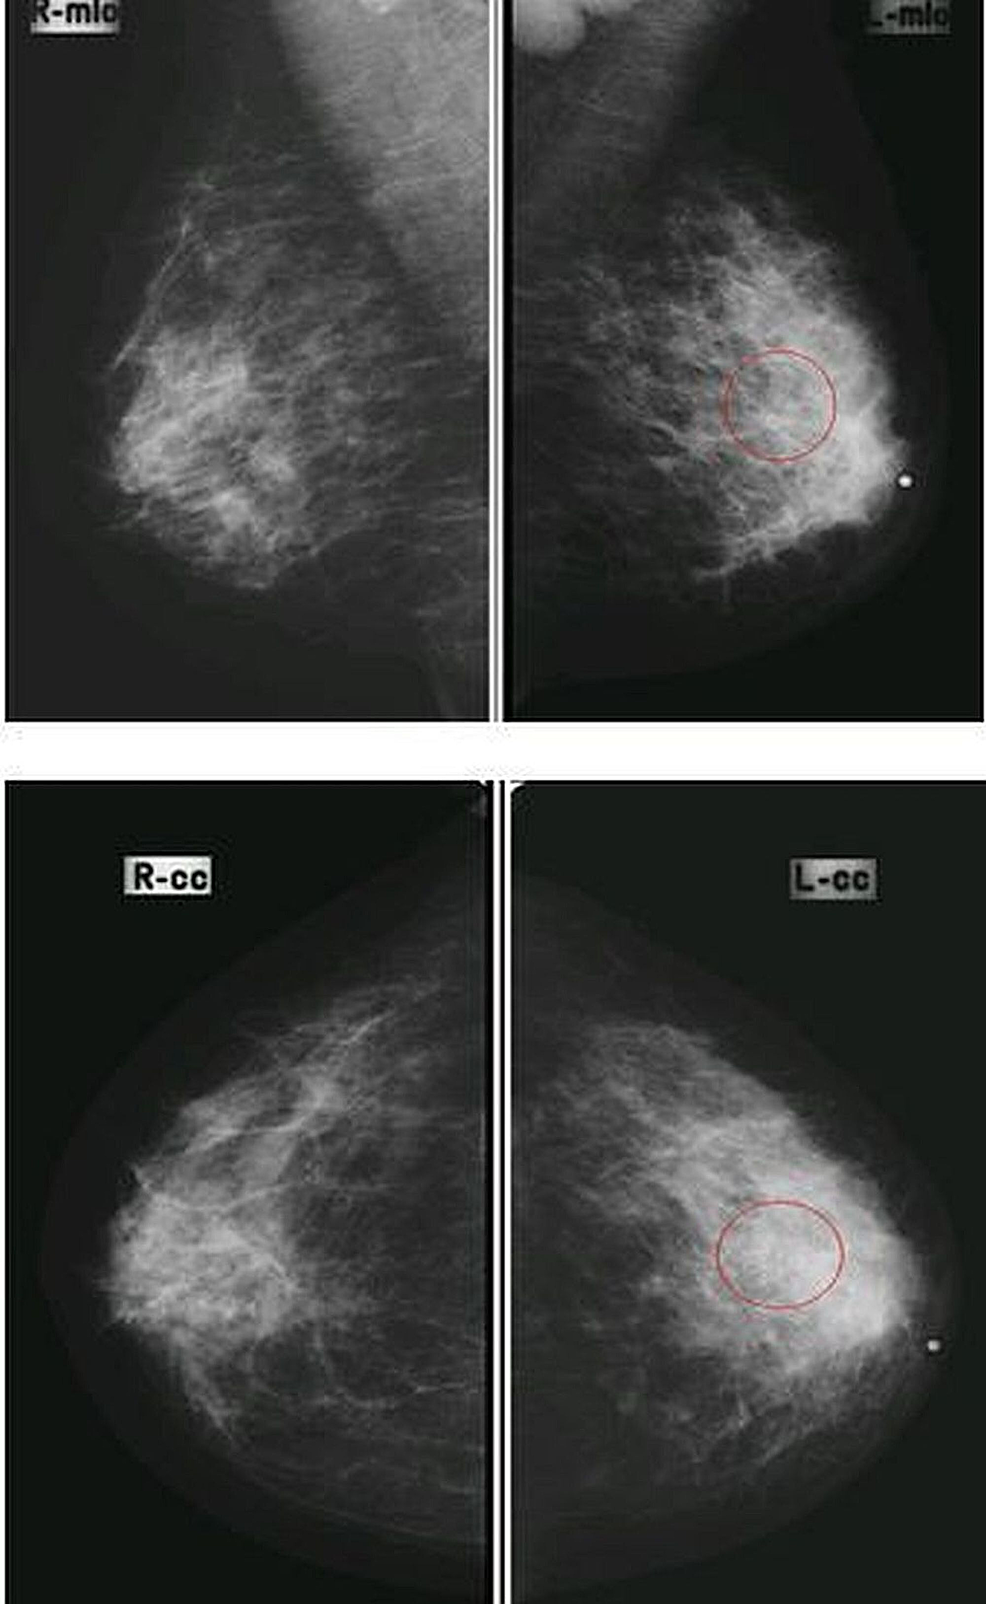 Mediolateral-oblique-(MLO)-and-cranial-caudal-(CC)-views-in-a-patient-having-pleomorphic-microcalcifications-in-the-upper-outer-quadrant-of-the-left-breast-with-enlarged-dense-axillary-lymph-nodes,-proven-to-be-breast-carcinoma-on-histopathology-(true-positive).